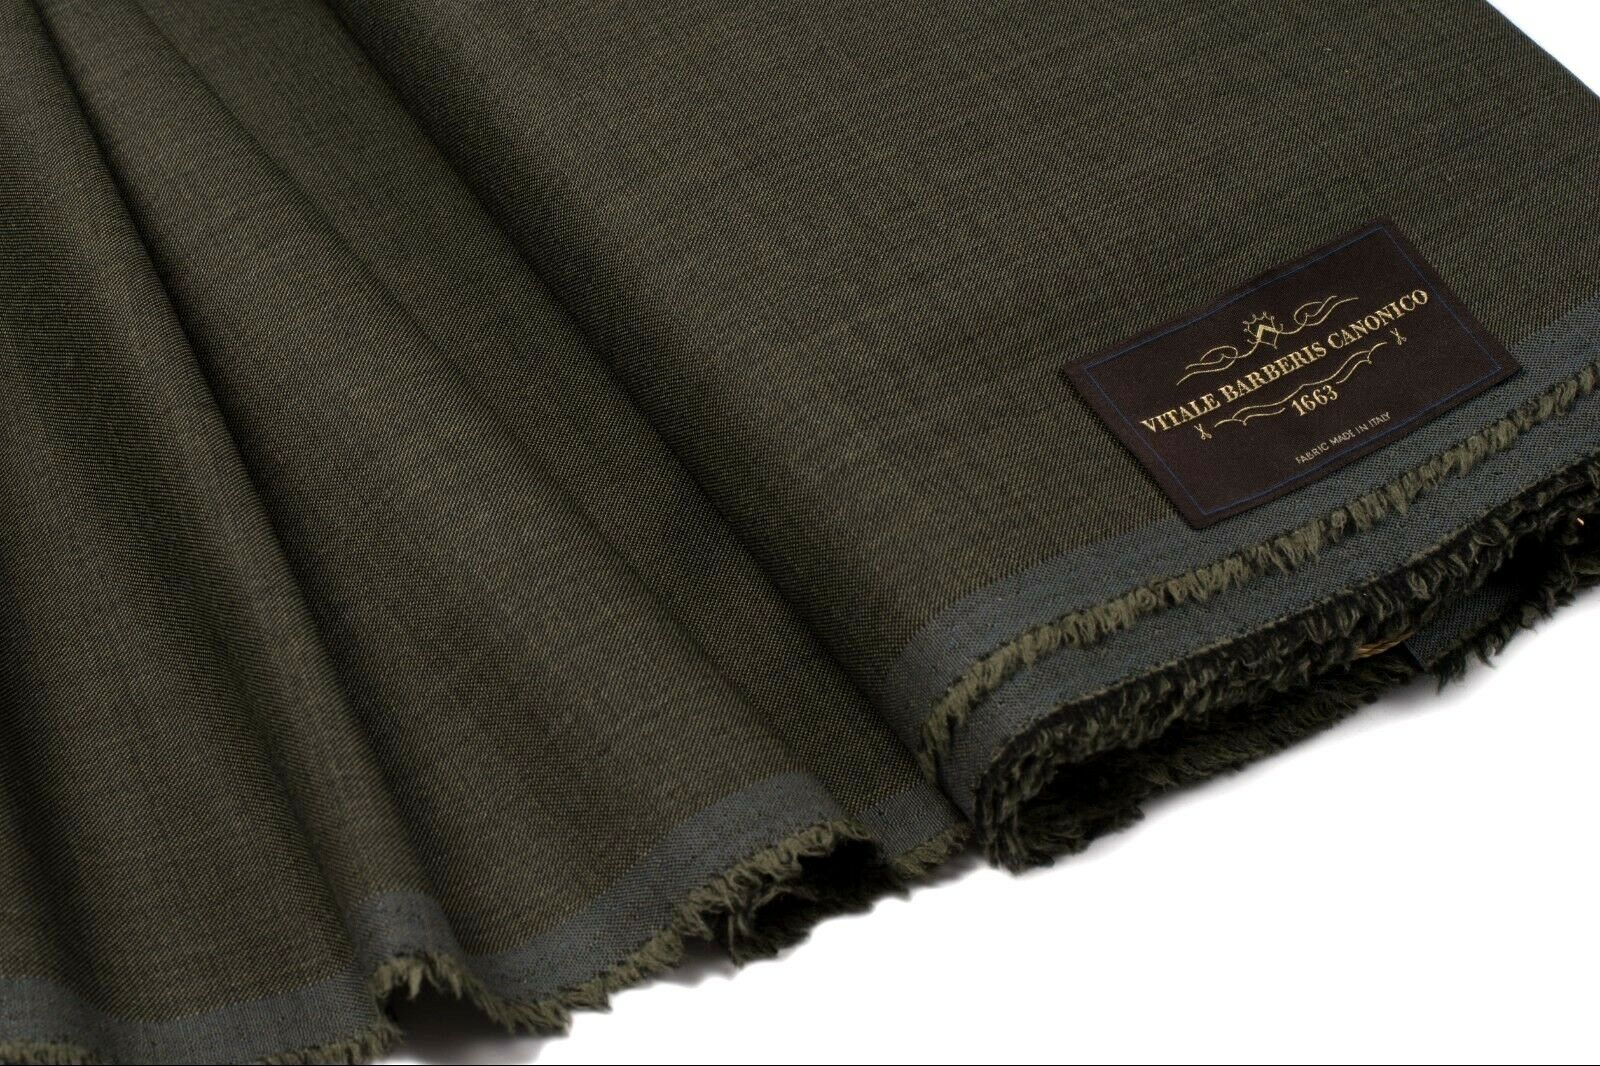 VITALE BARBERIS CANONICO SUPER 130's WOOL Suiting Fabric  ITALY 3.25 length